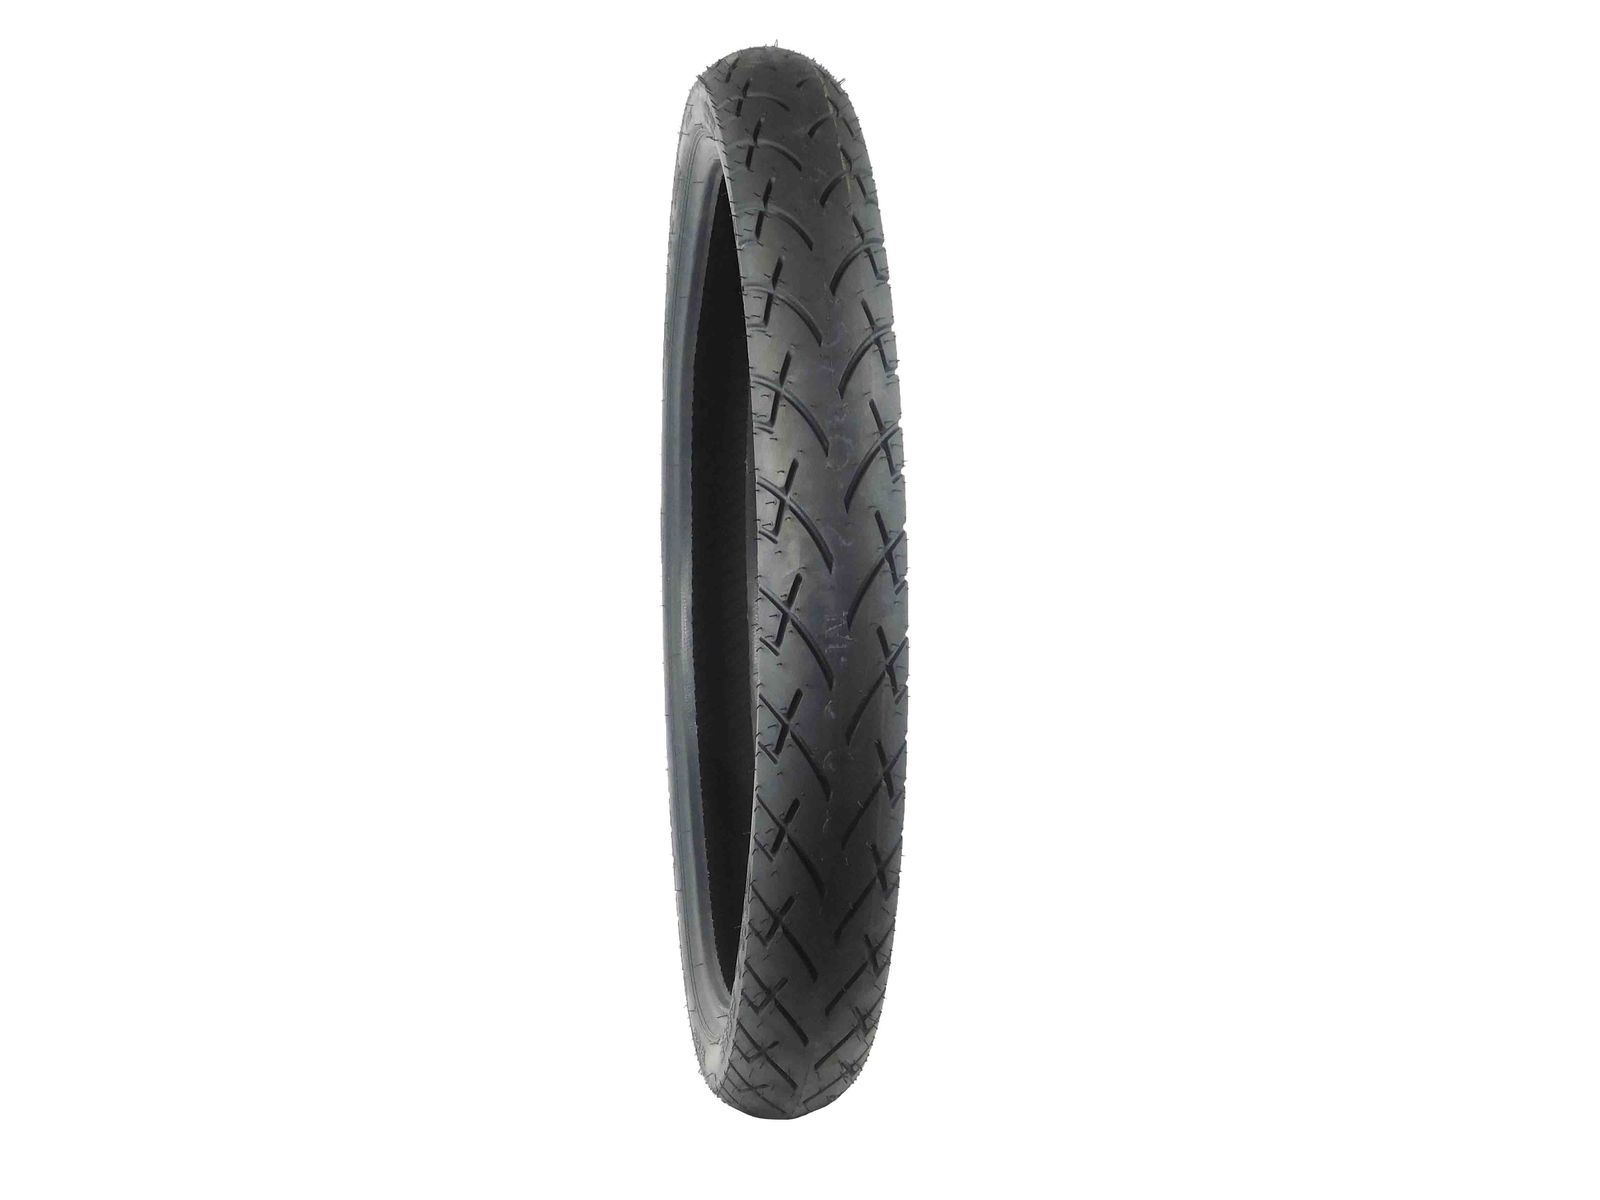 Full-Bore-80-90-21-Front-140-90-16-Rear-Cruisers-Motorcycle-Tires-image-2